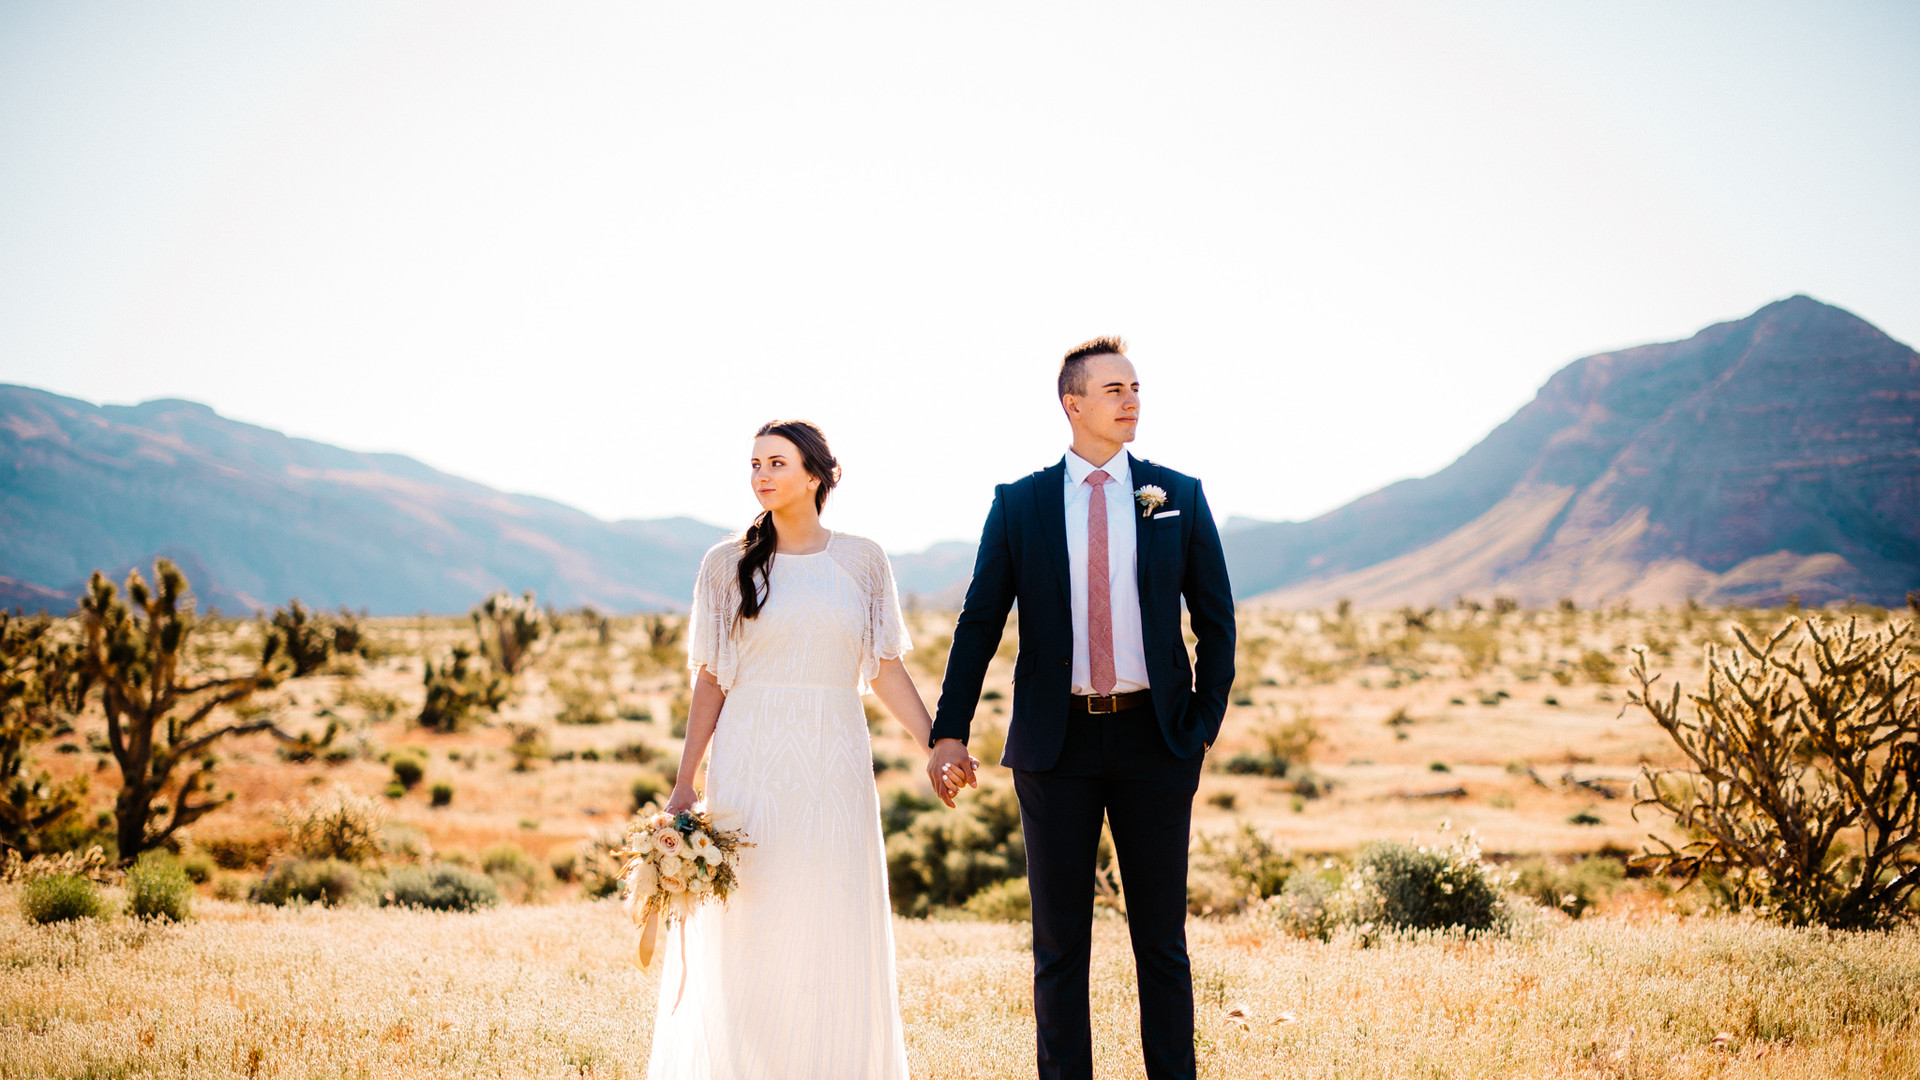 Southern Utah Wedding Photographer